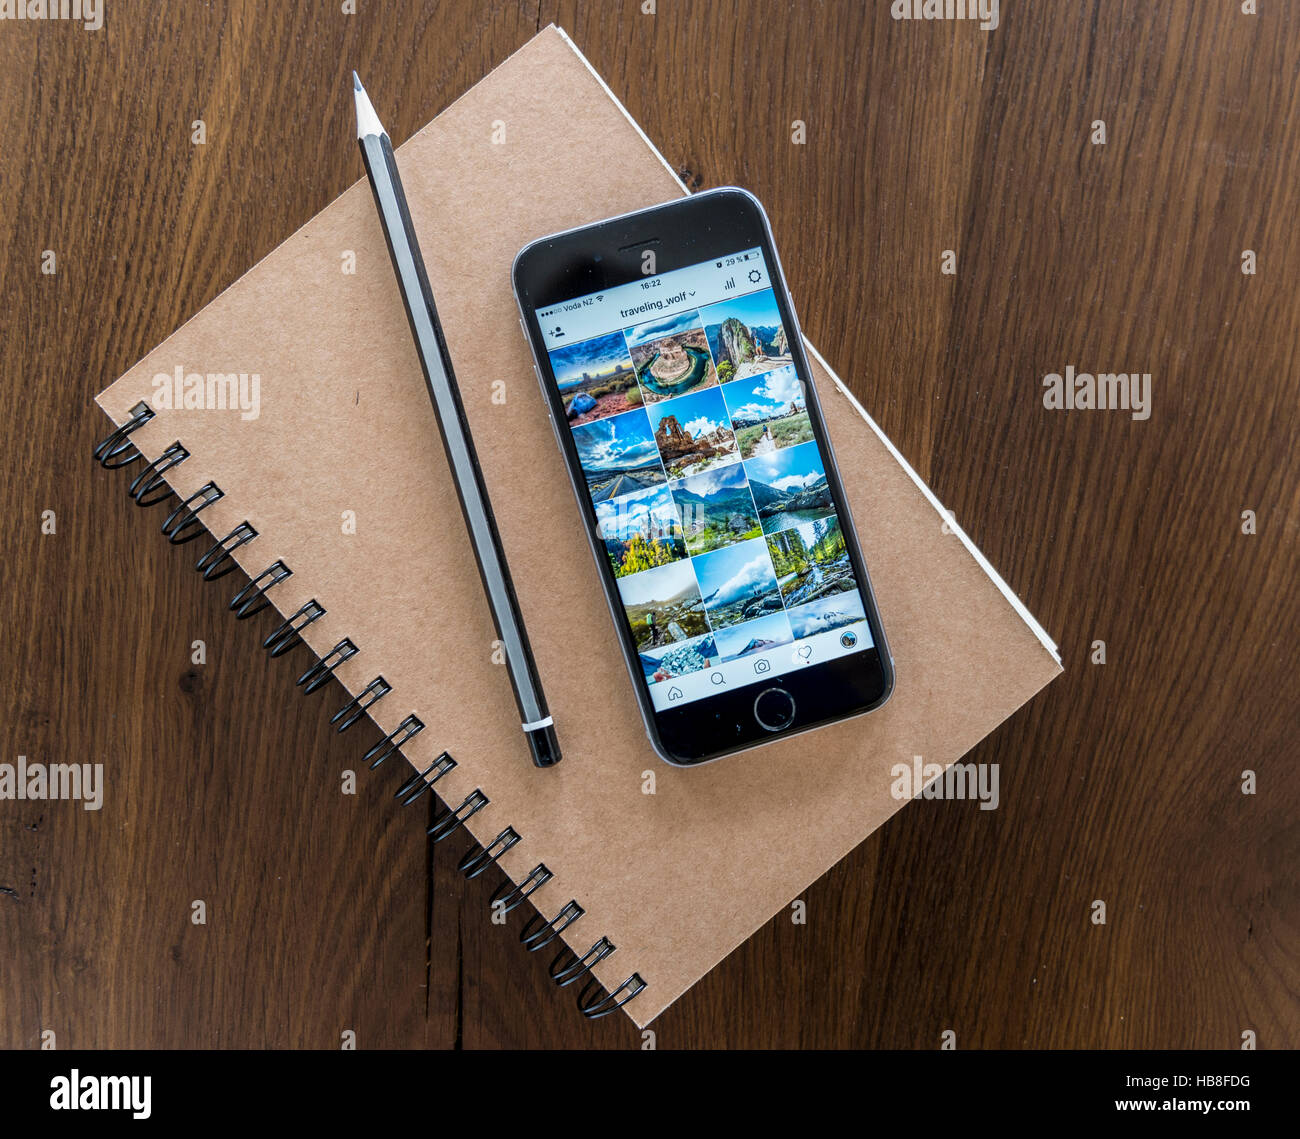 Instagram picture gallery displayed on smartphone screen, notebook and pen on a wooden table - Stock Image